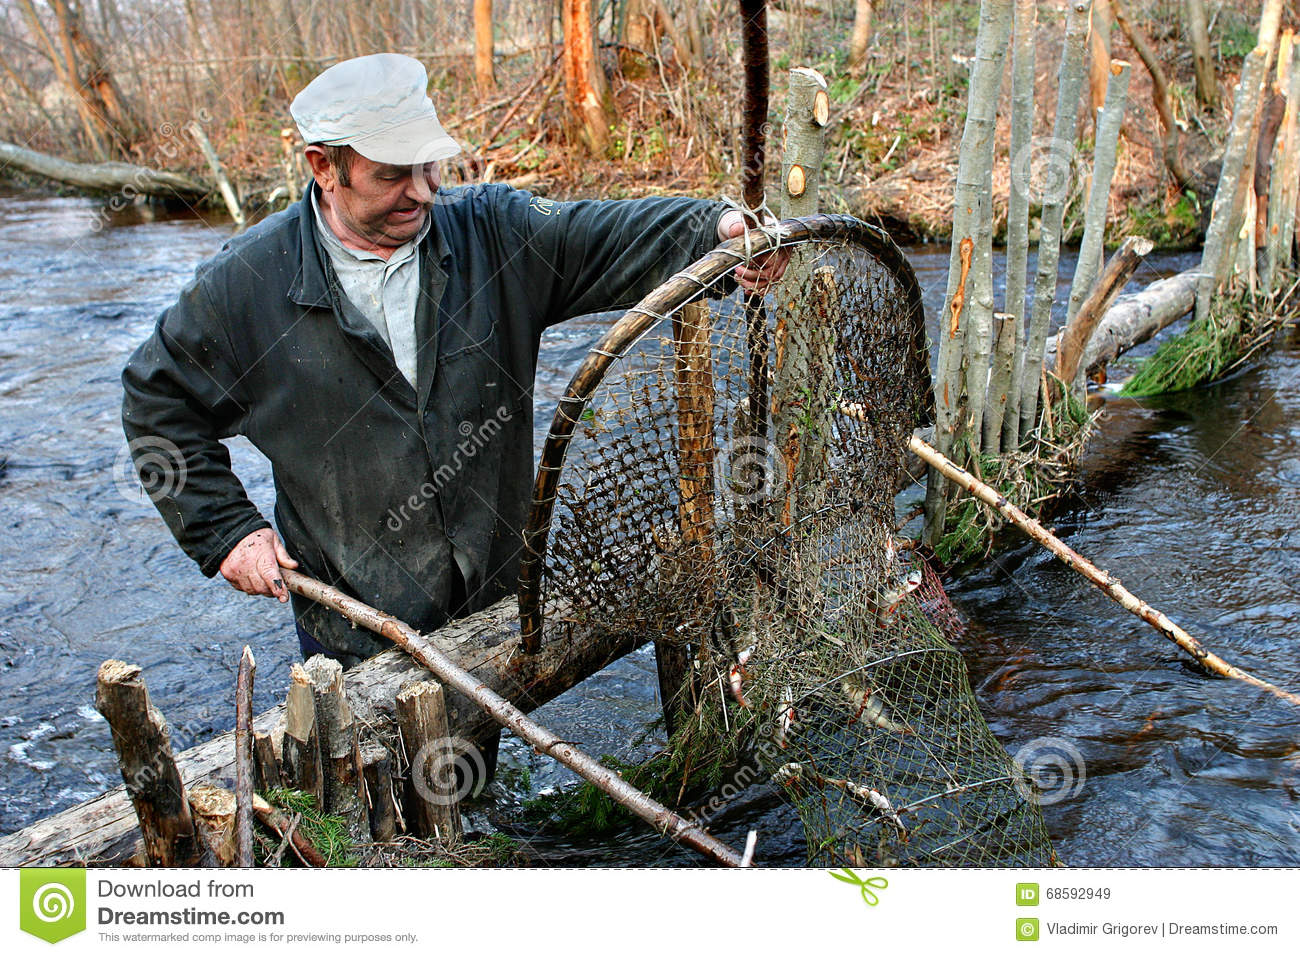 Farmer catch fish in river using hoop net fishing traps for Hoop net fishing